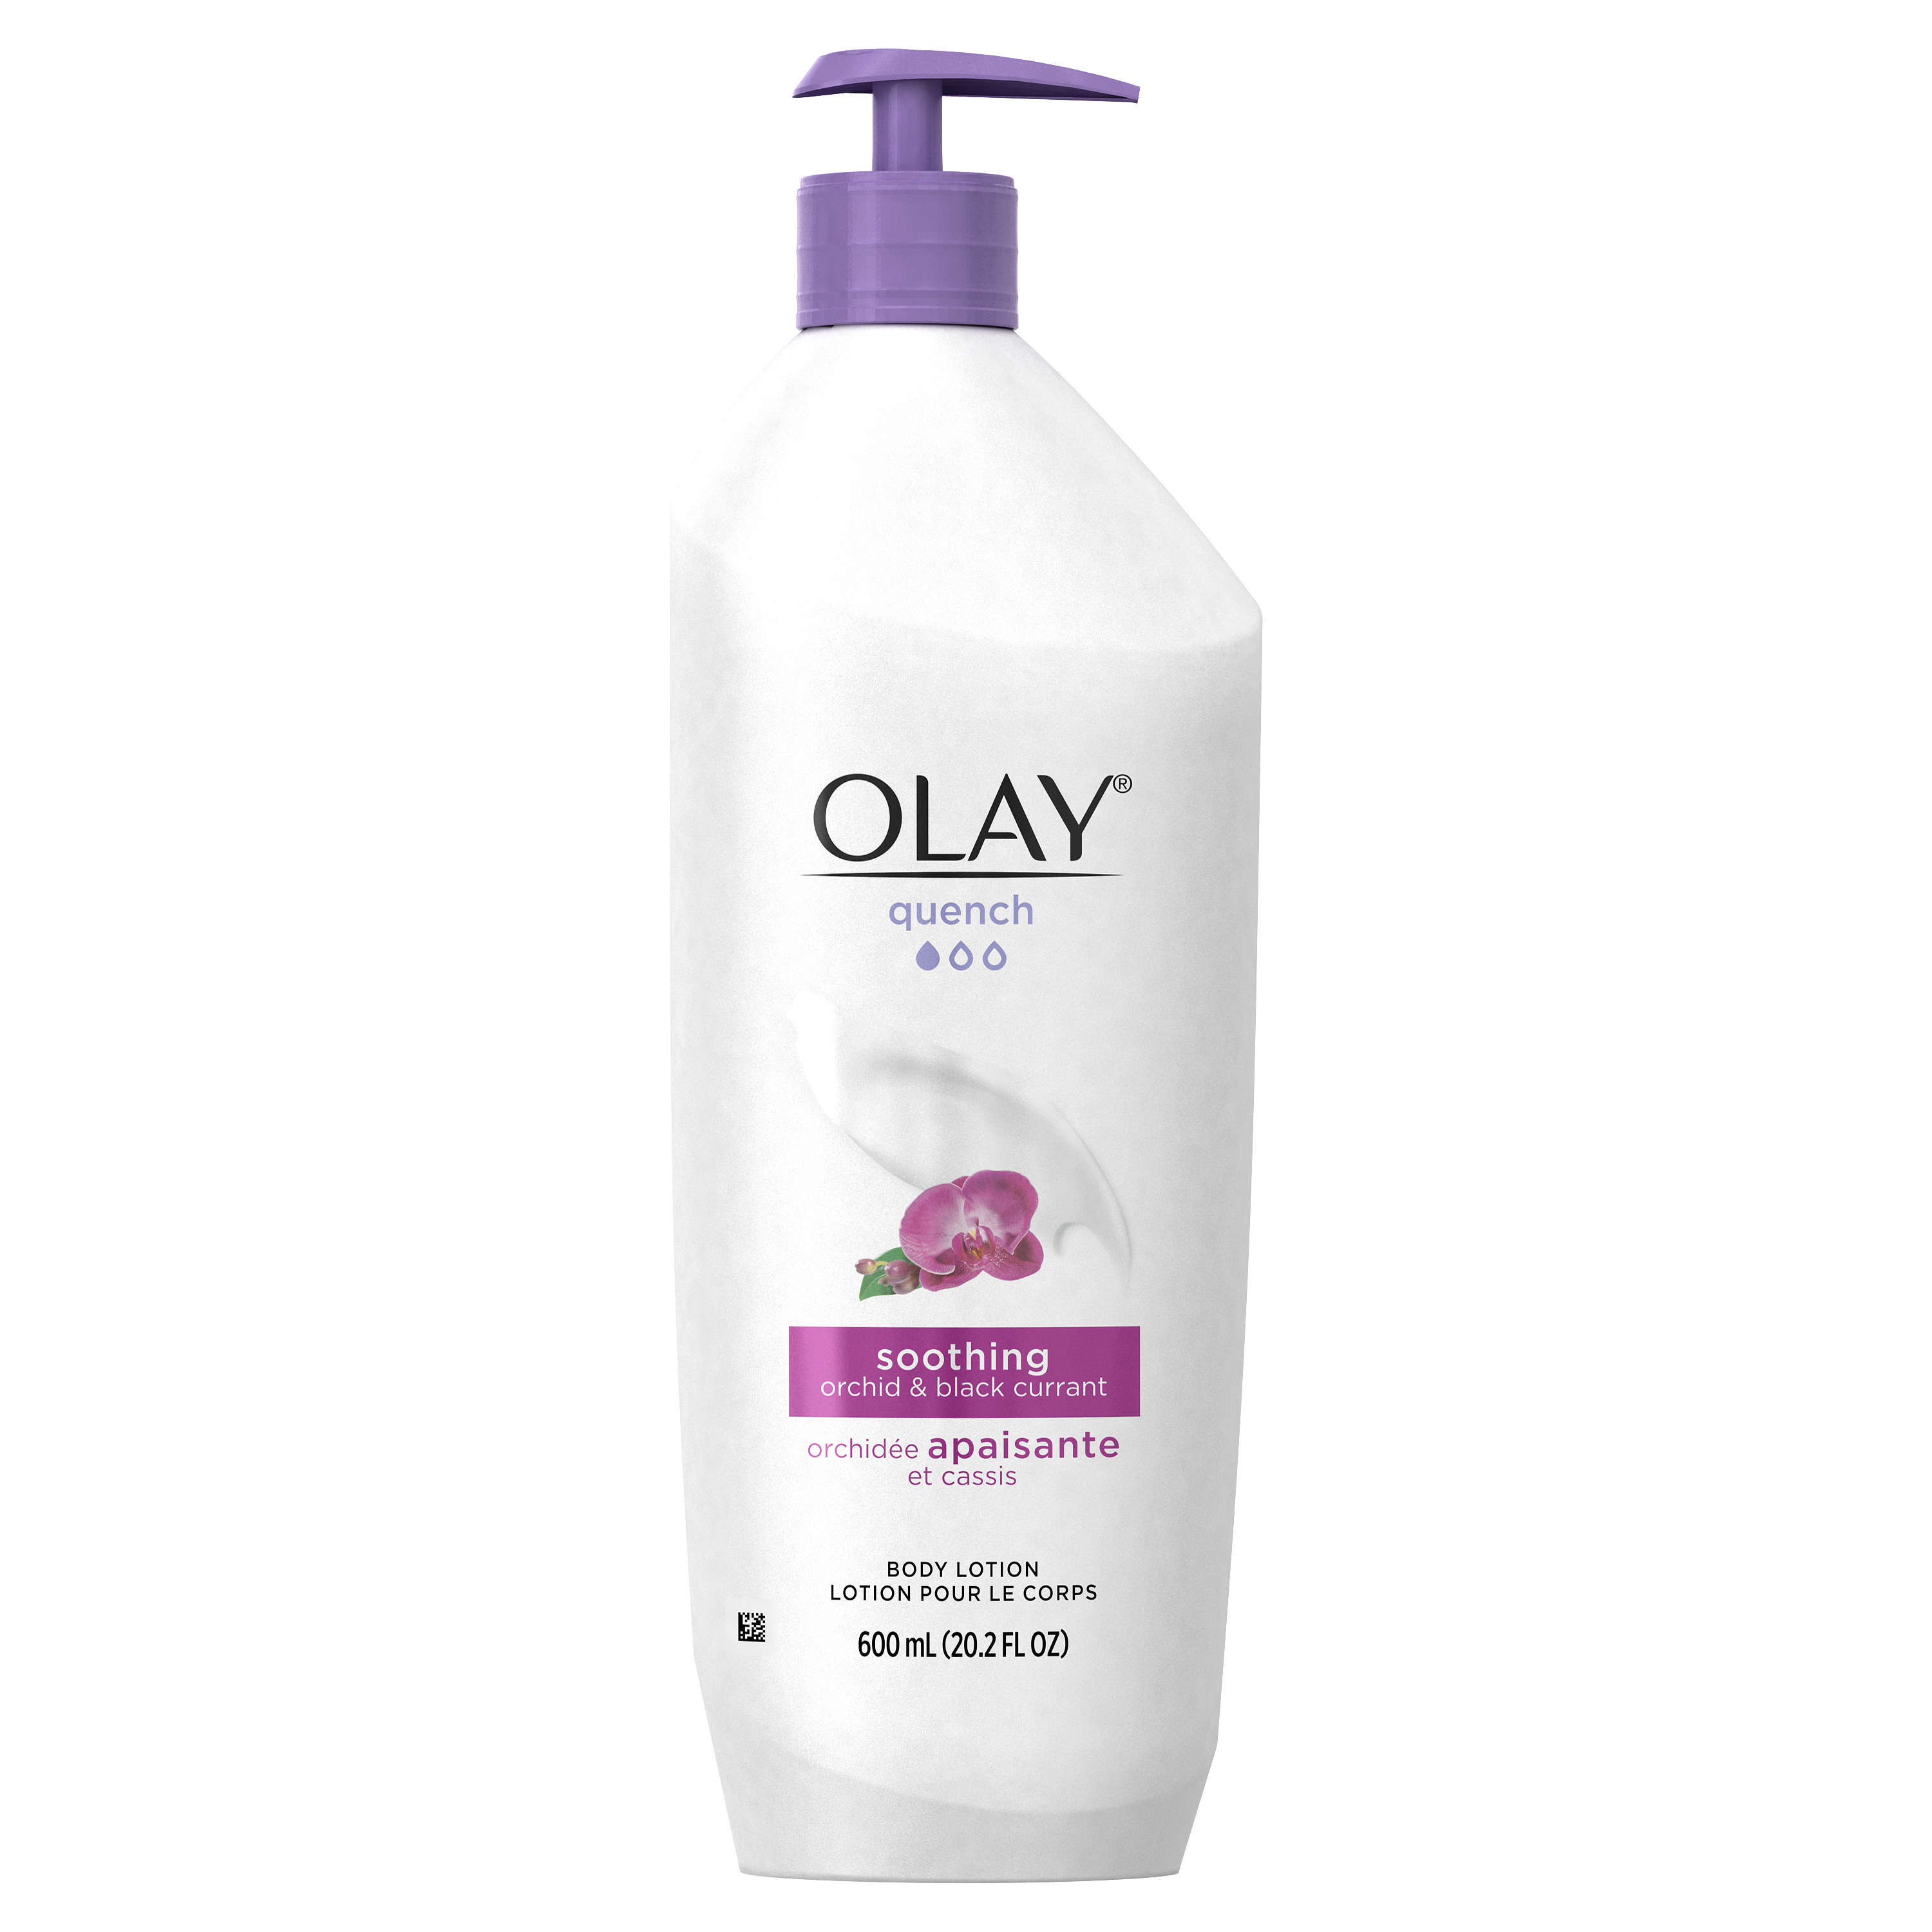 Olay Quench Soothing Orchid & Black Currant Body Lotion, 20.2 fl oz